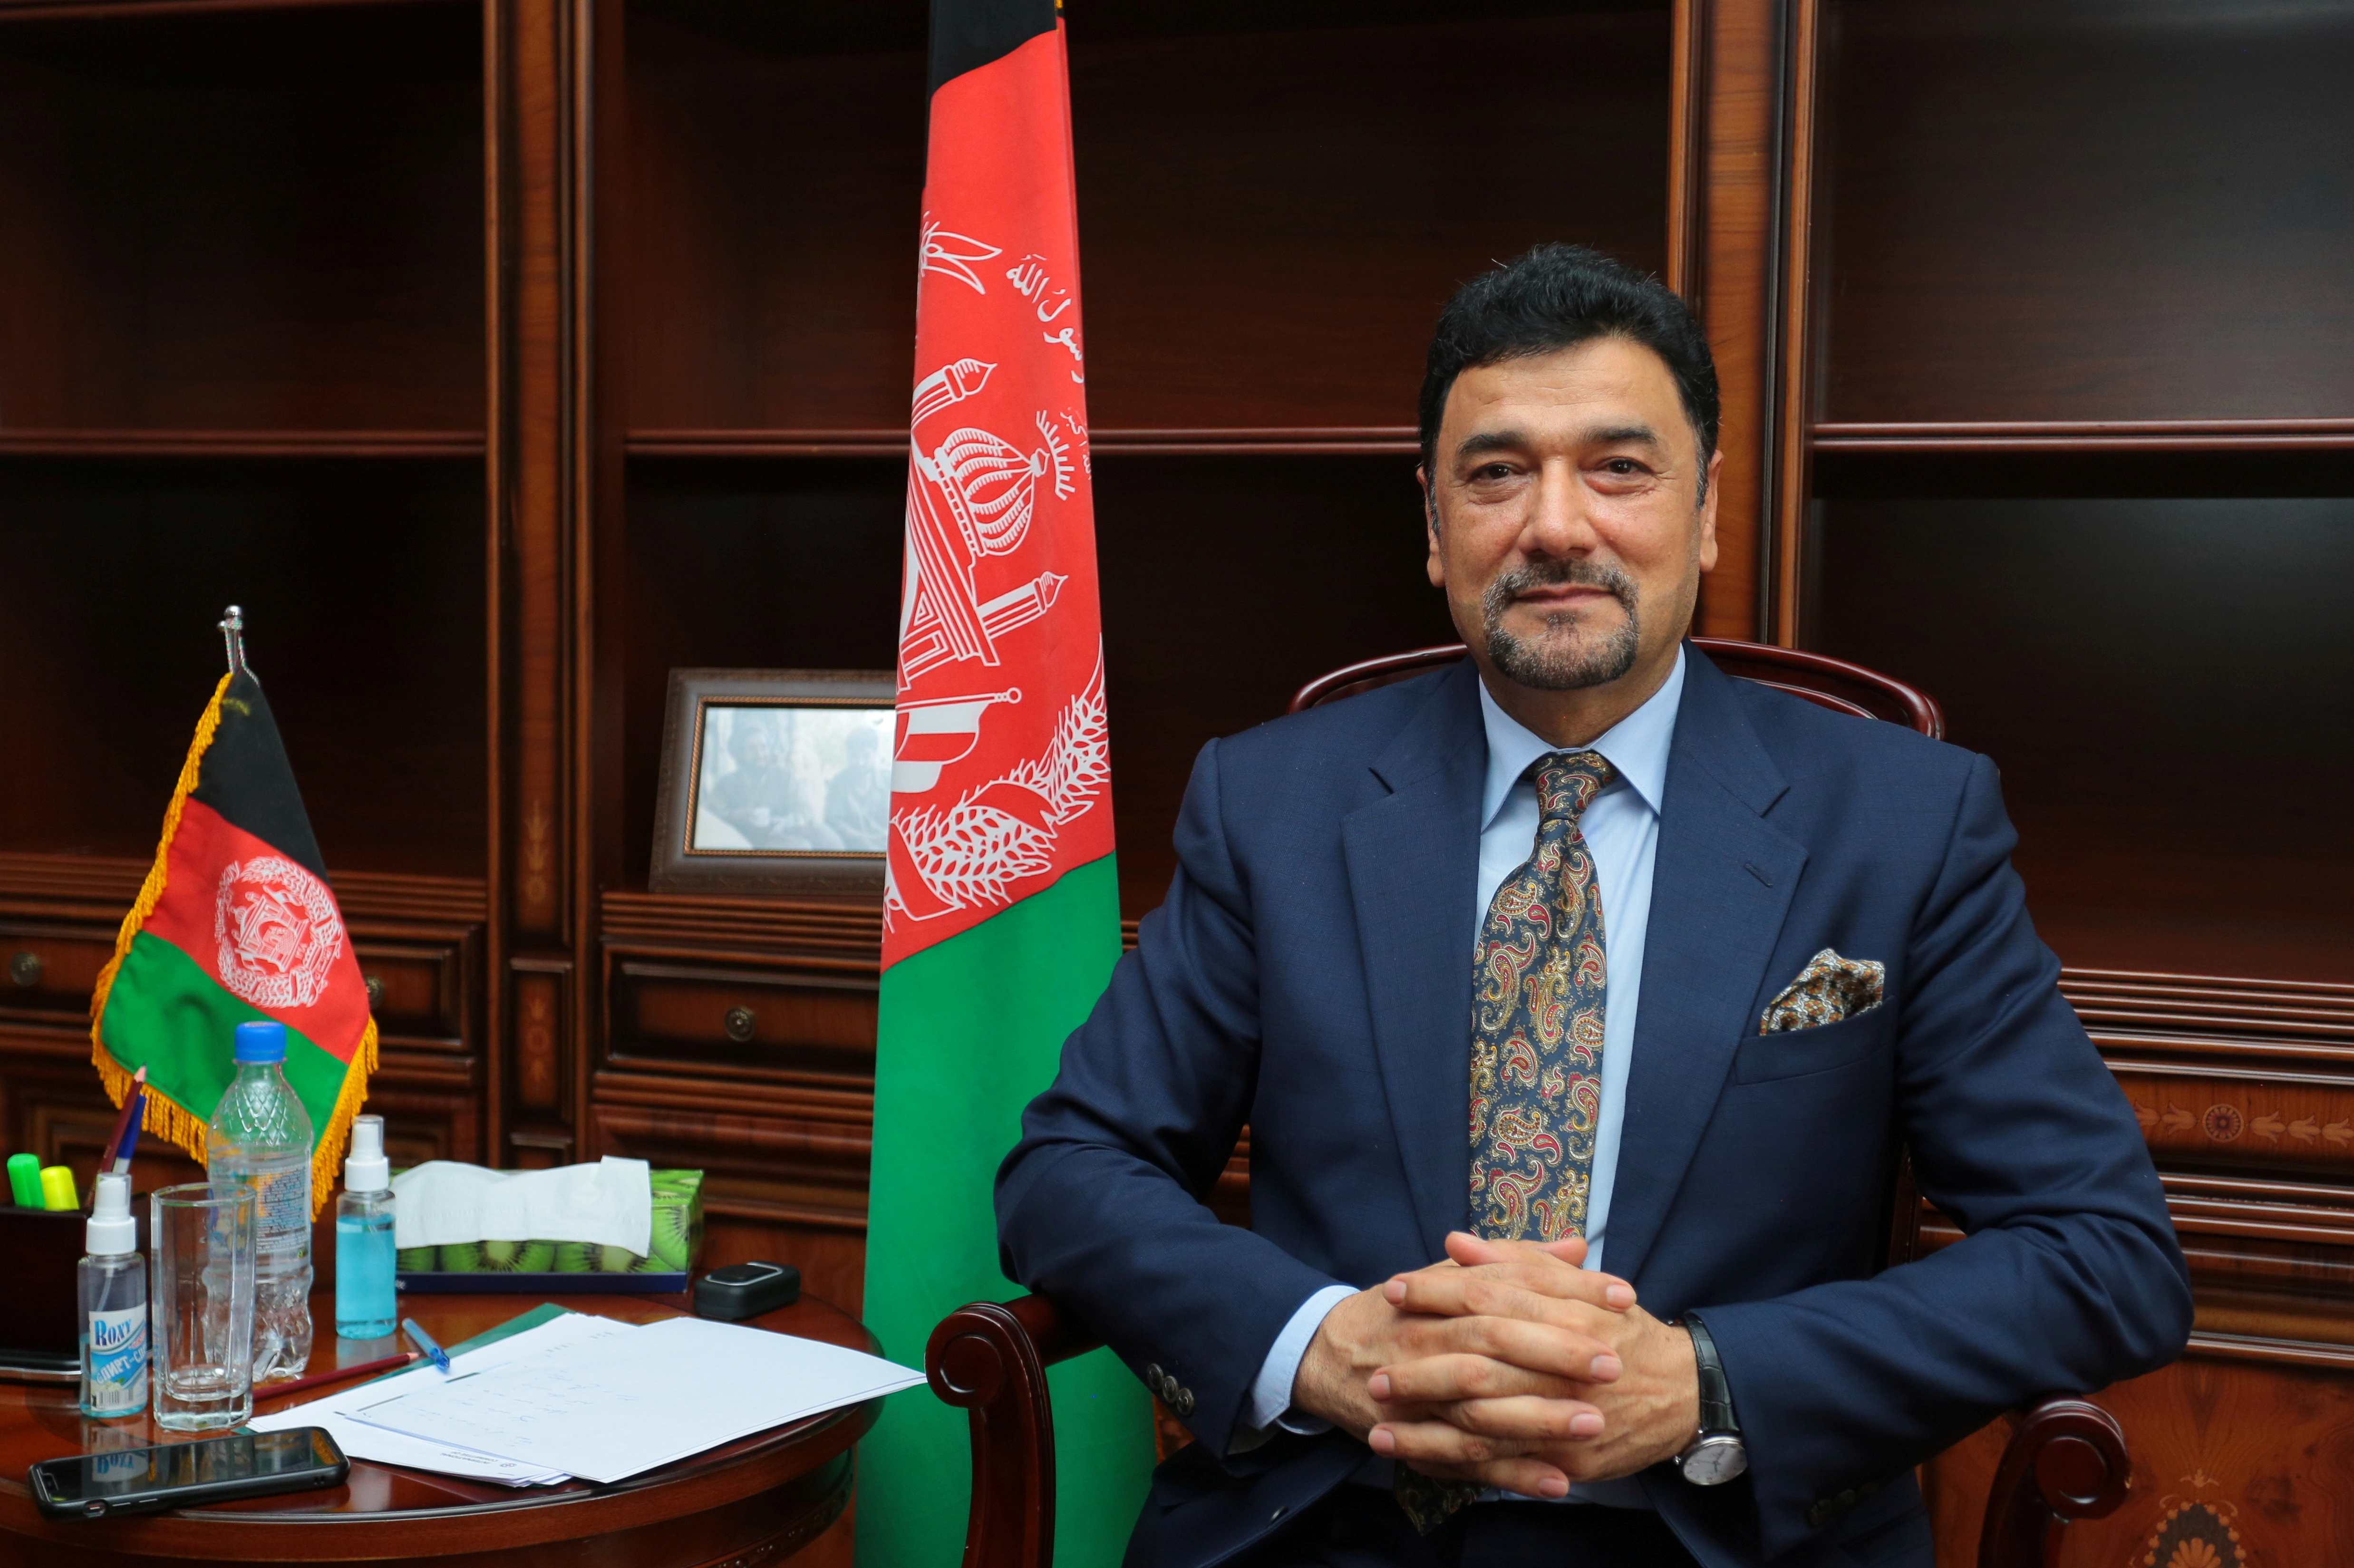 Afghan ambassador to Tajikistan Mohammad Zahir Aghbar attends an interview with Reuters in Dushanbe, Tajikistan August 18, 2021. REUTERS/Didor Sadulloev/File Photo